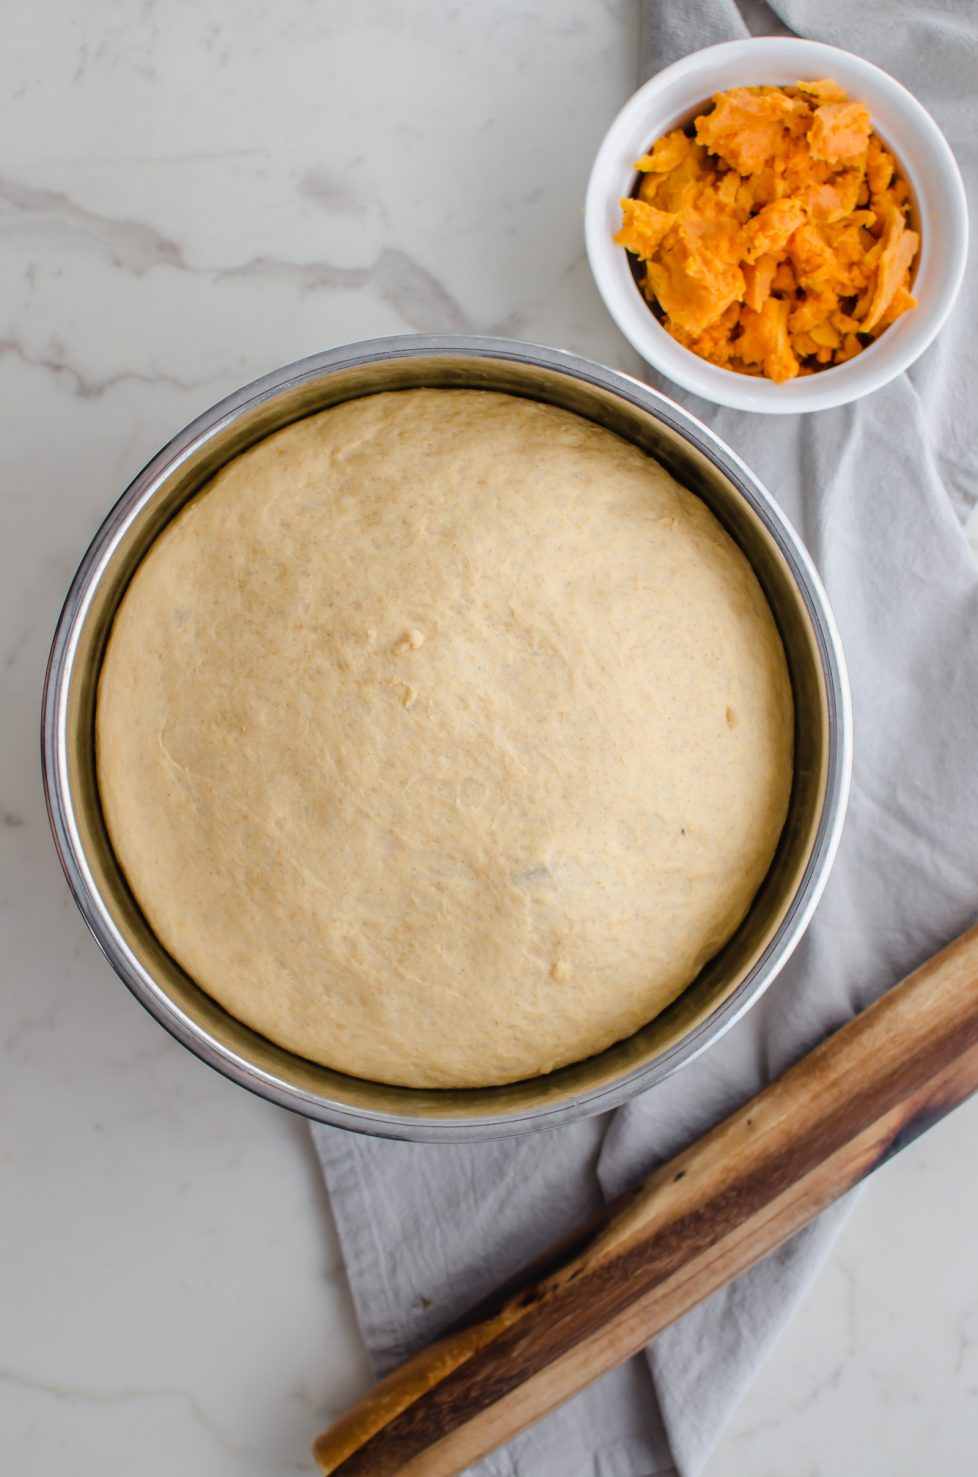 A bowl of risen sweet potato cinnamon roll dough with a rolling pin and grey towel on the side.